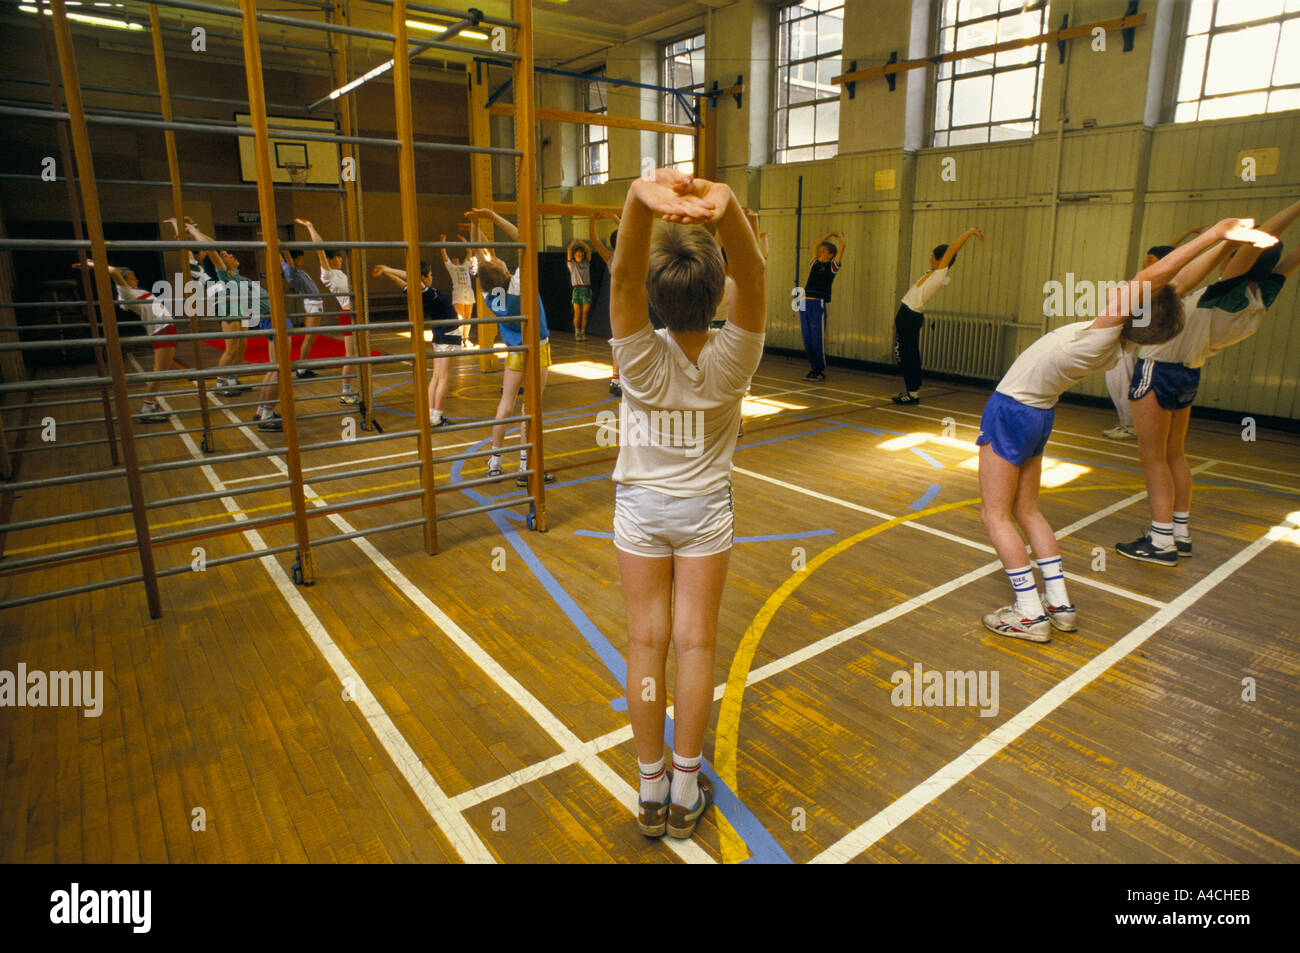 Pupils Doing Stretching Exercises During Gym Class In